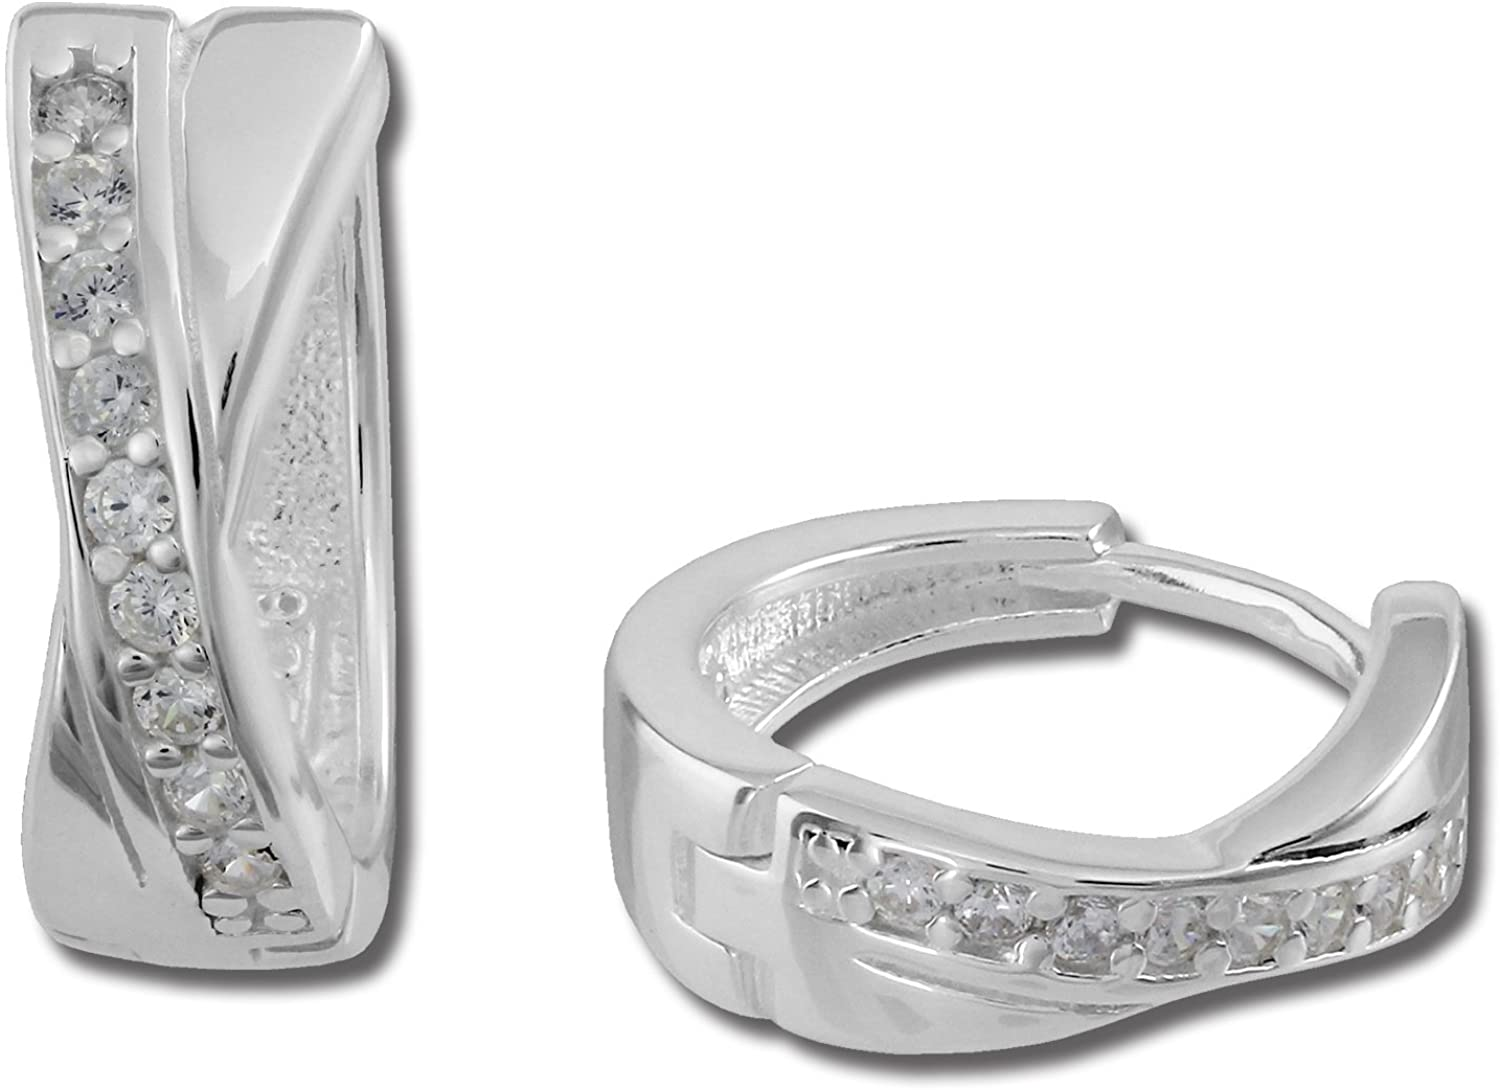 SilberDream Creole X-shaped zirconia white 925 sterling silver earring SDO380W an offer made by Fit4Style